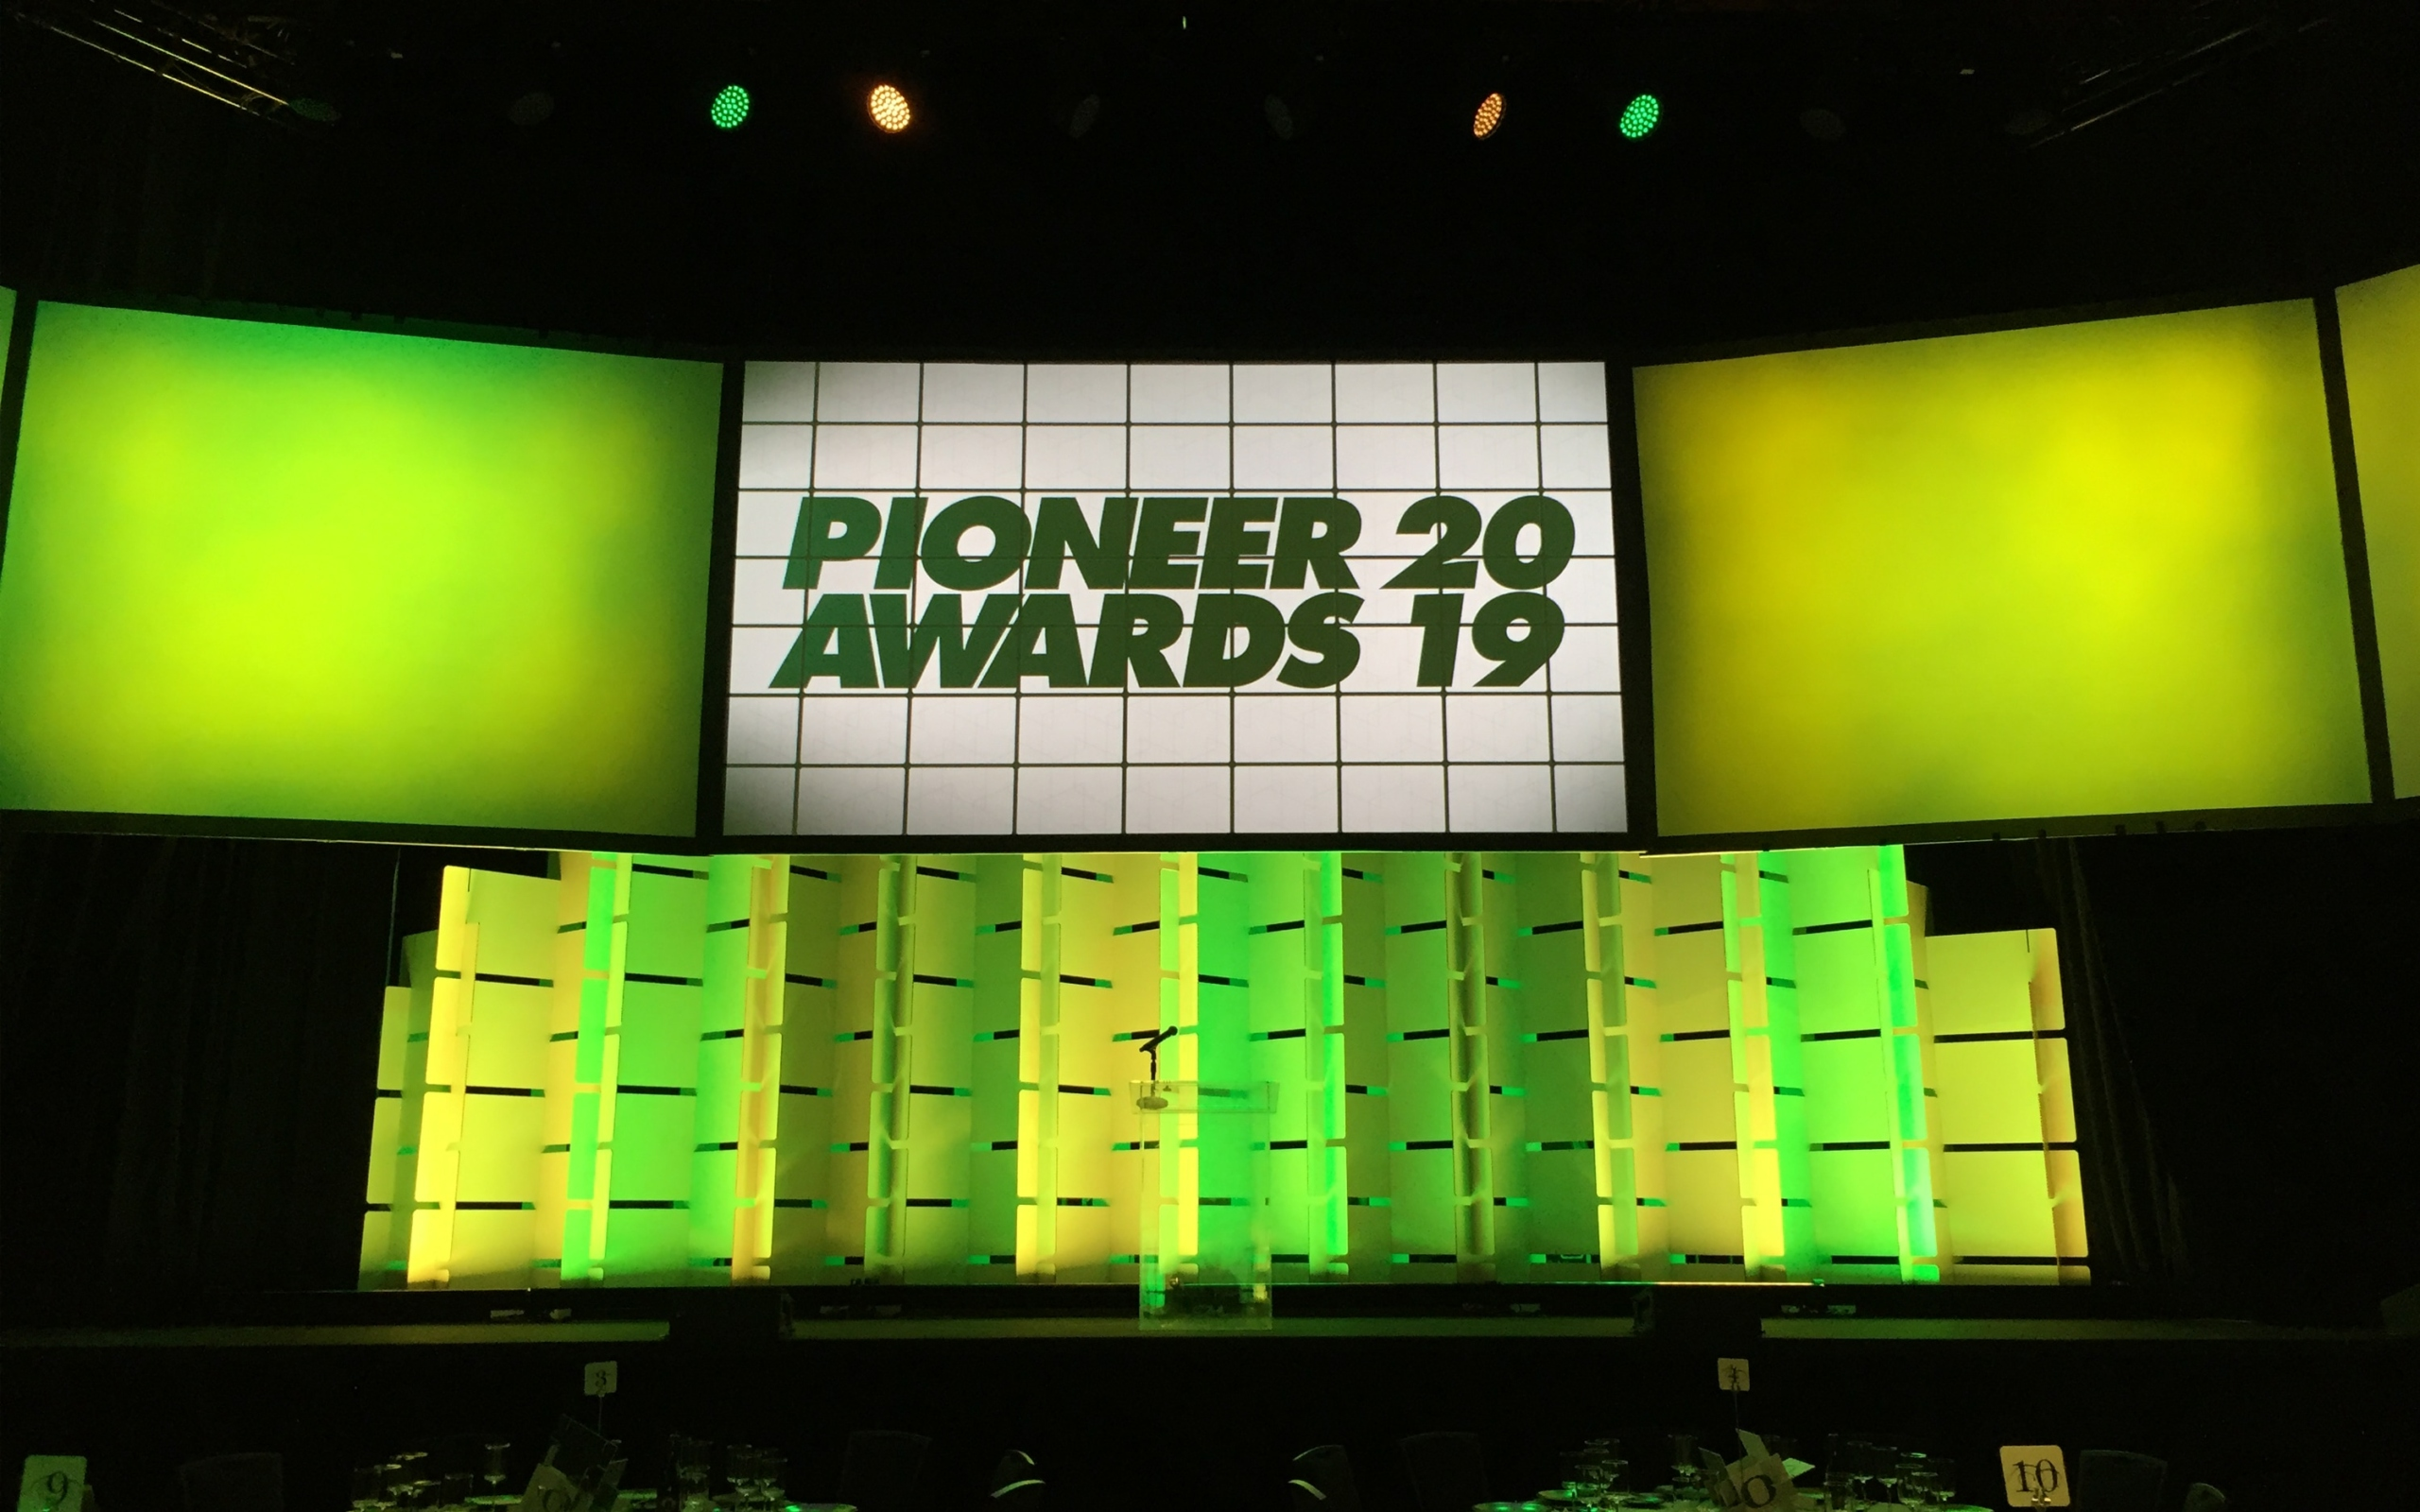 UofO Pioneer Awards Stage Backdrop